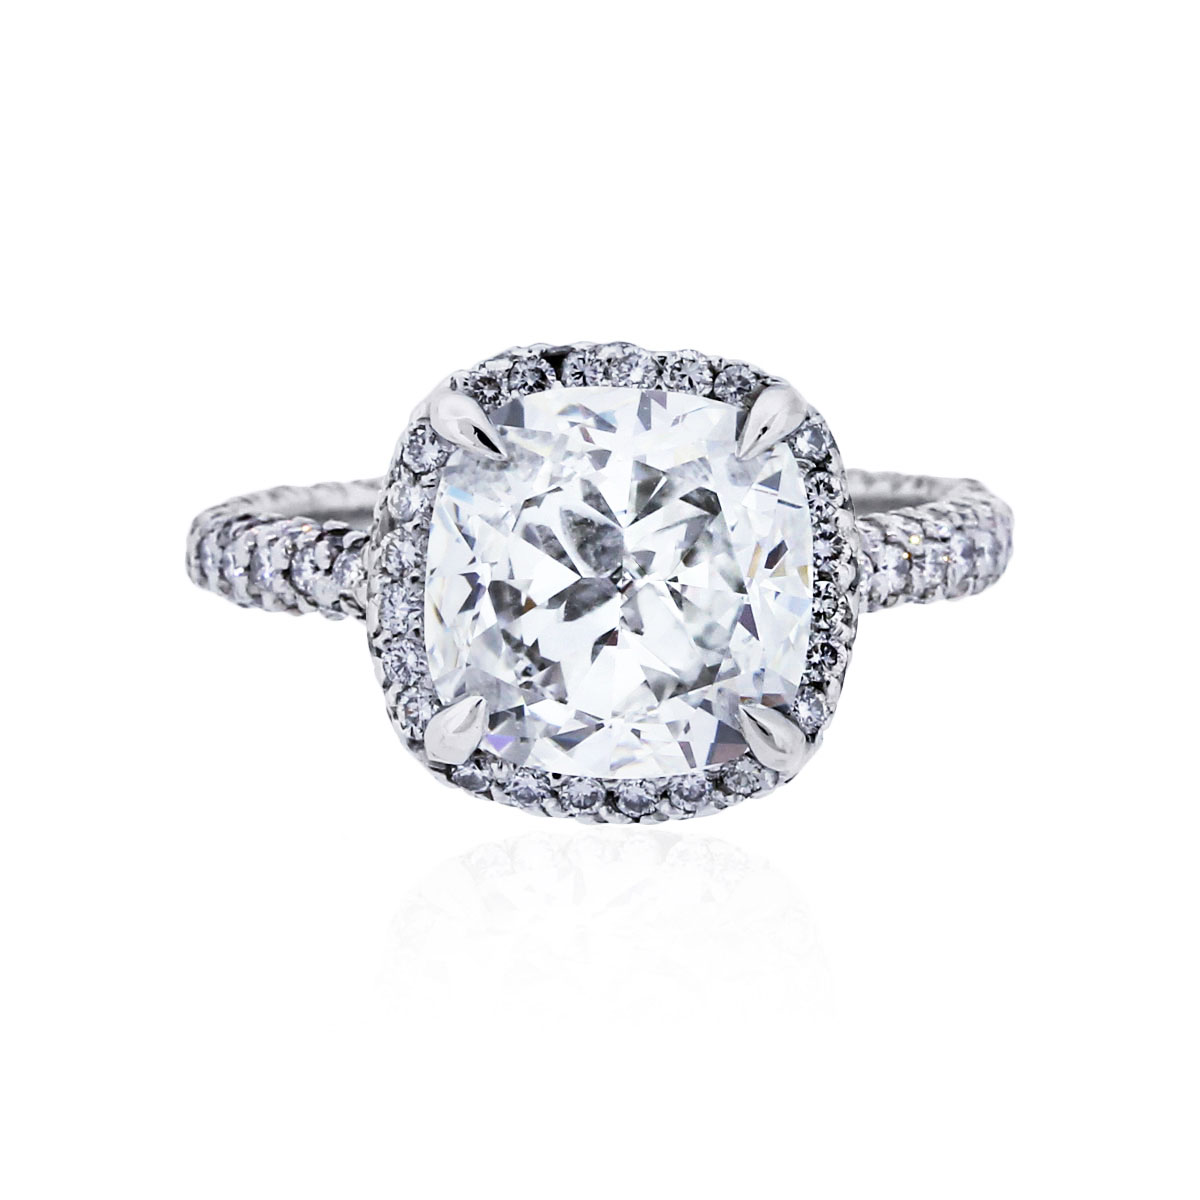 You are viewing this Platinum 3.02ct Cushion Cut Diamond Engagement Ring!